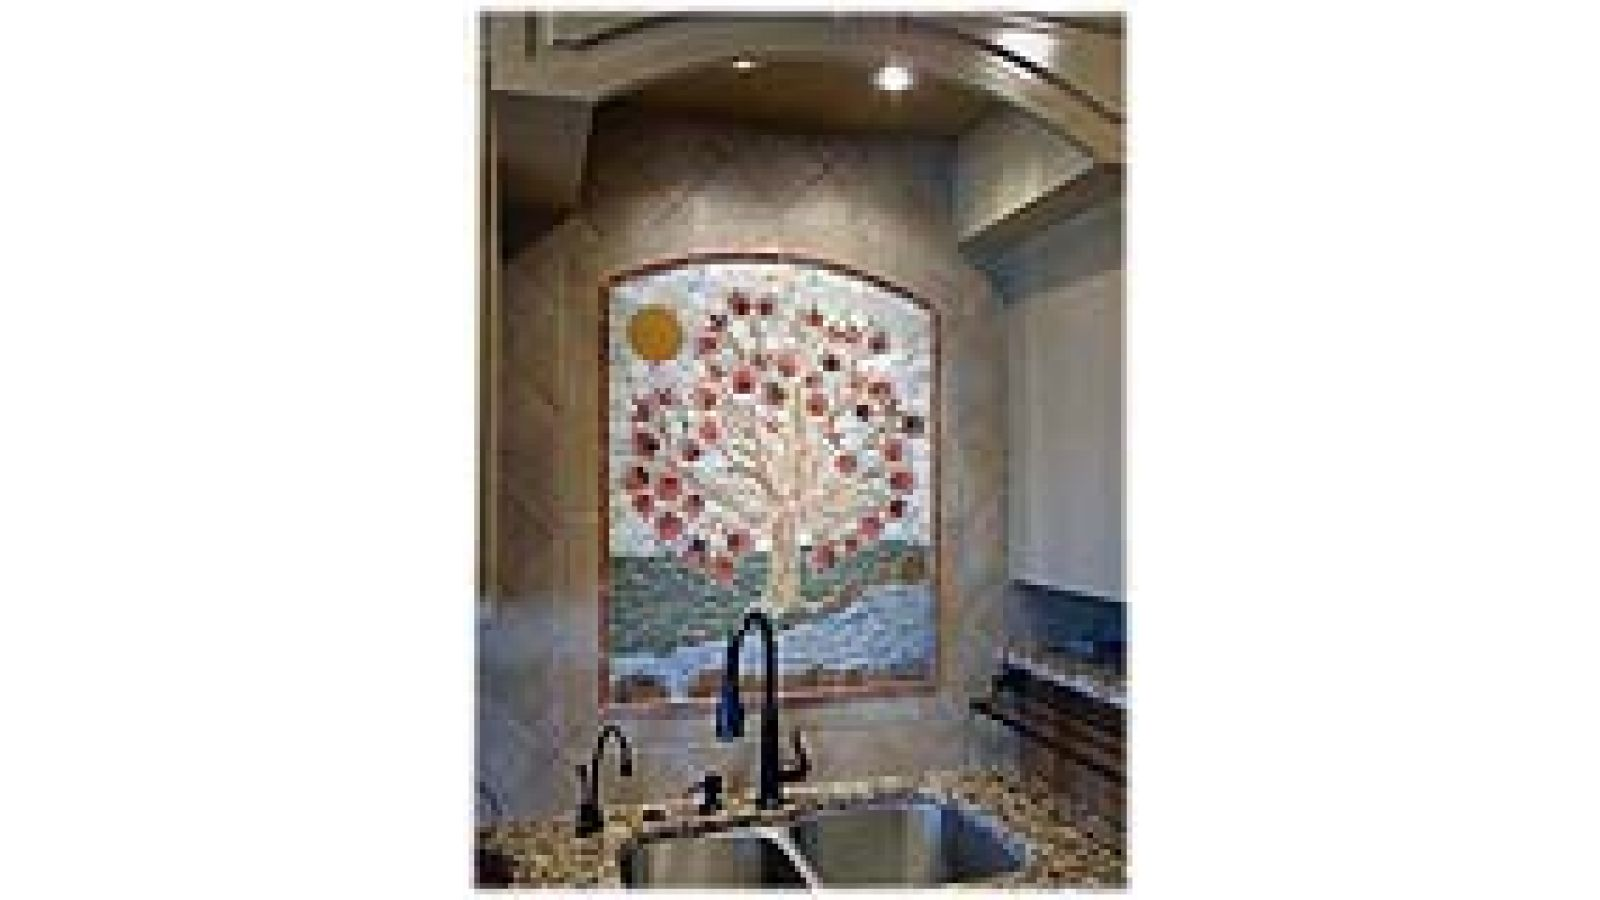 Tree of Life handmade ceramic tile designs